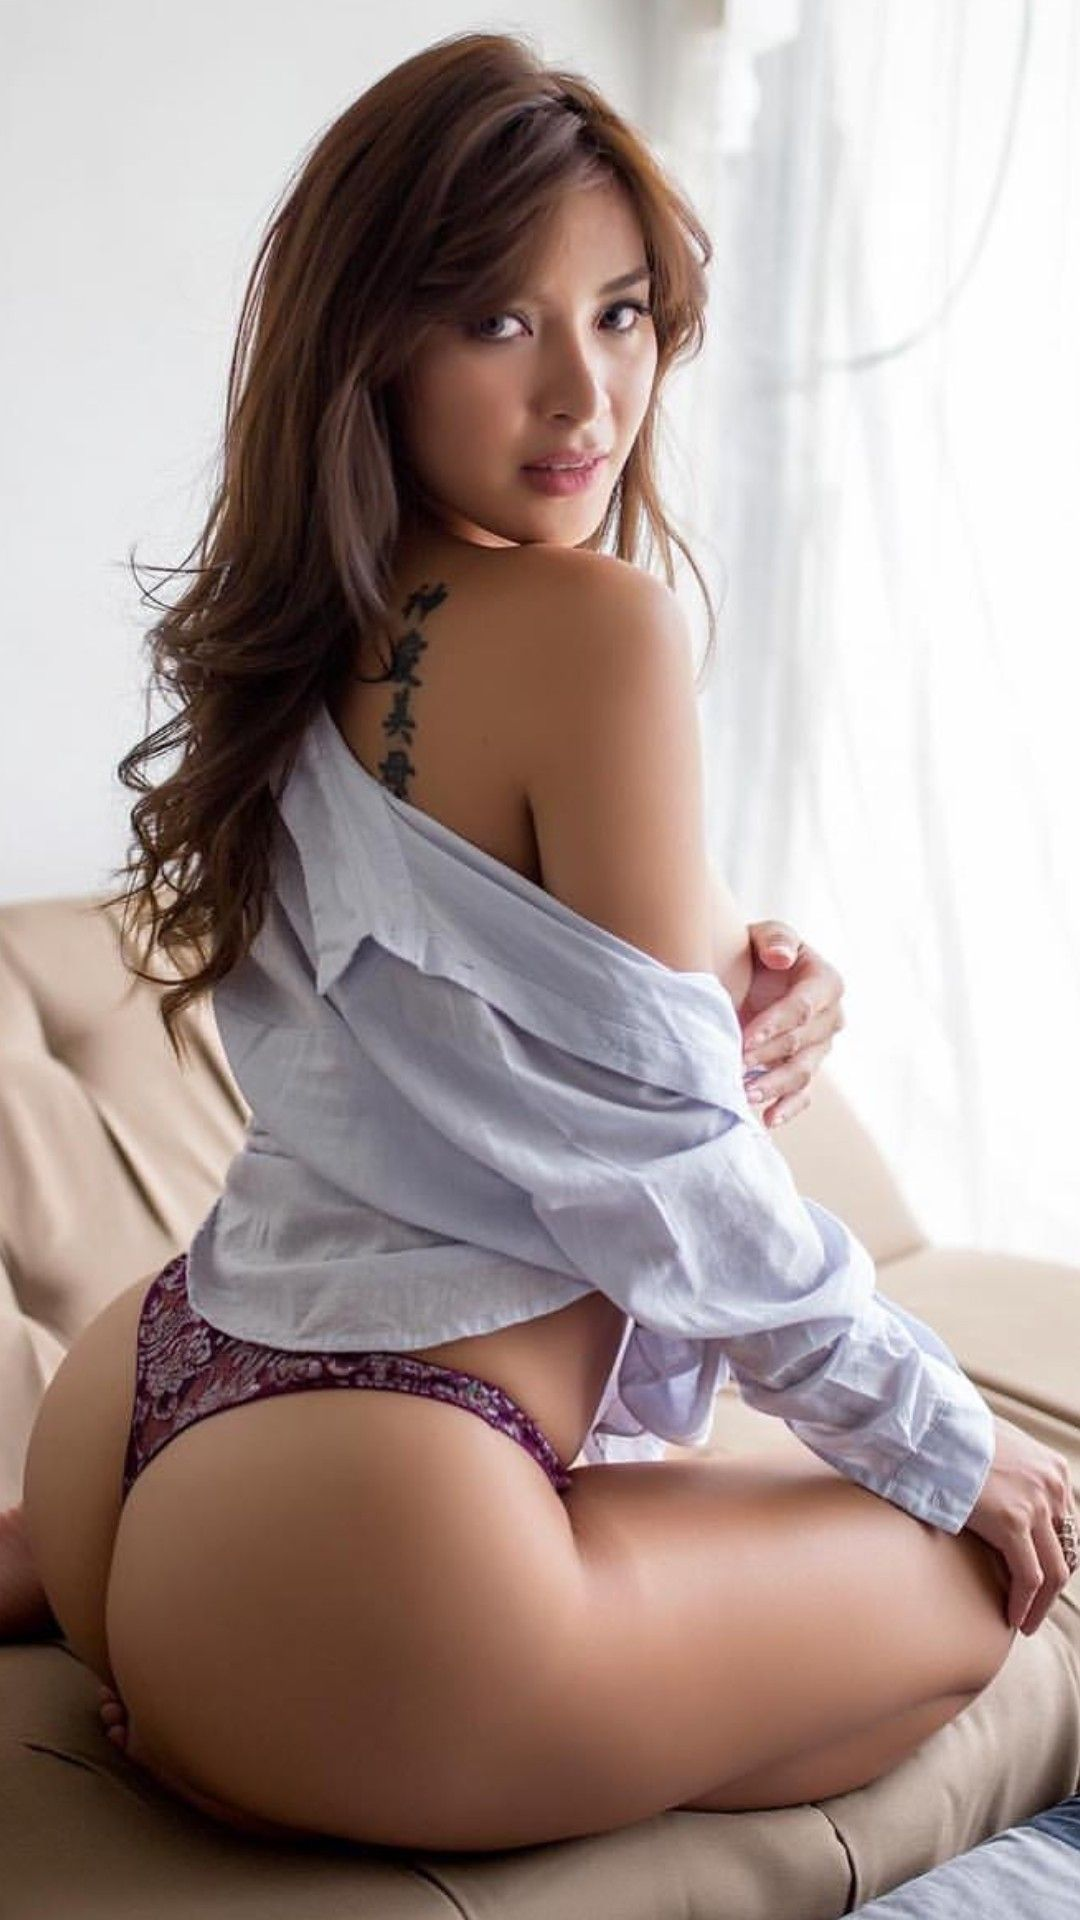 Asians with nice asses